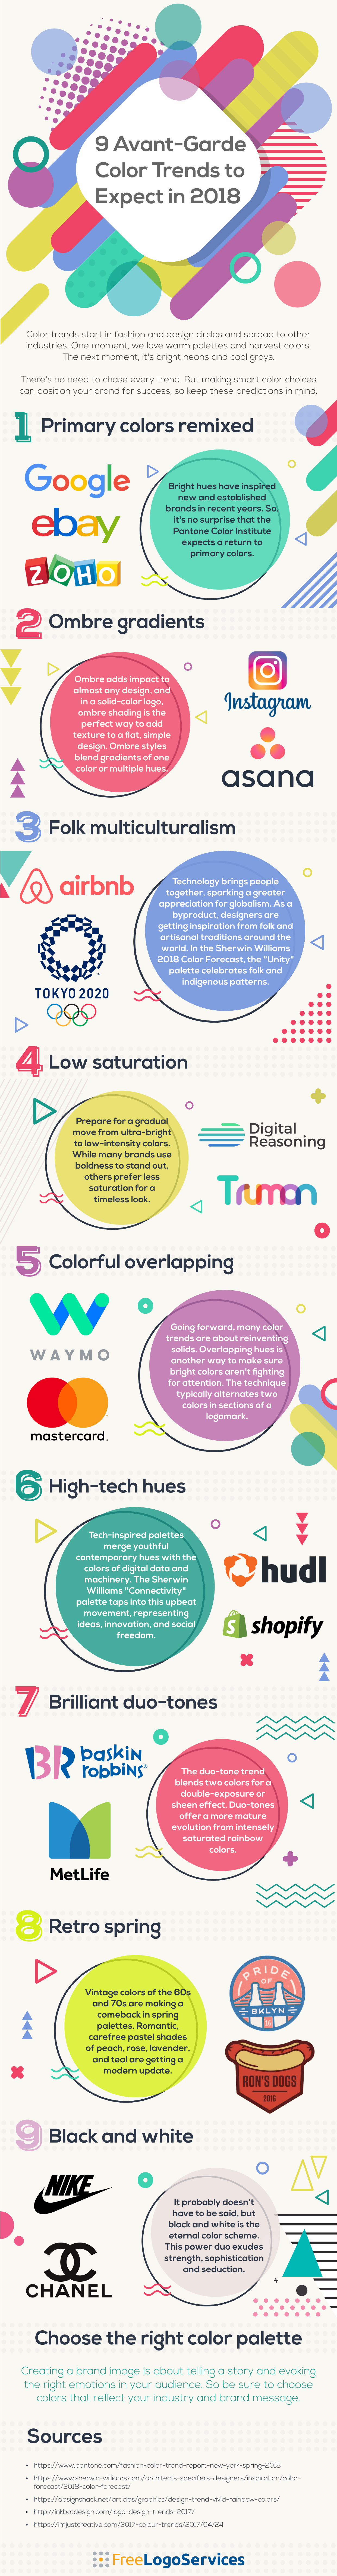 Plan Your Brands' Color Palette: Color Trends 2018 - Infographic